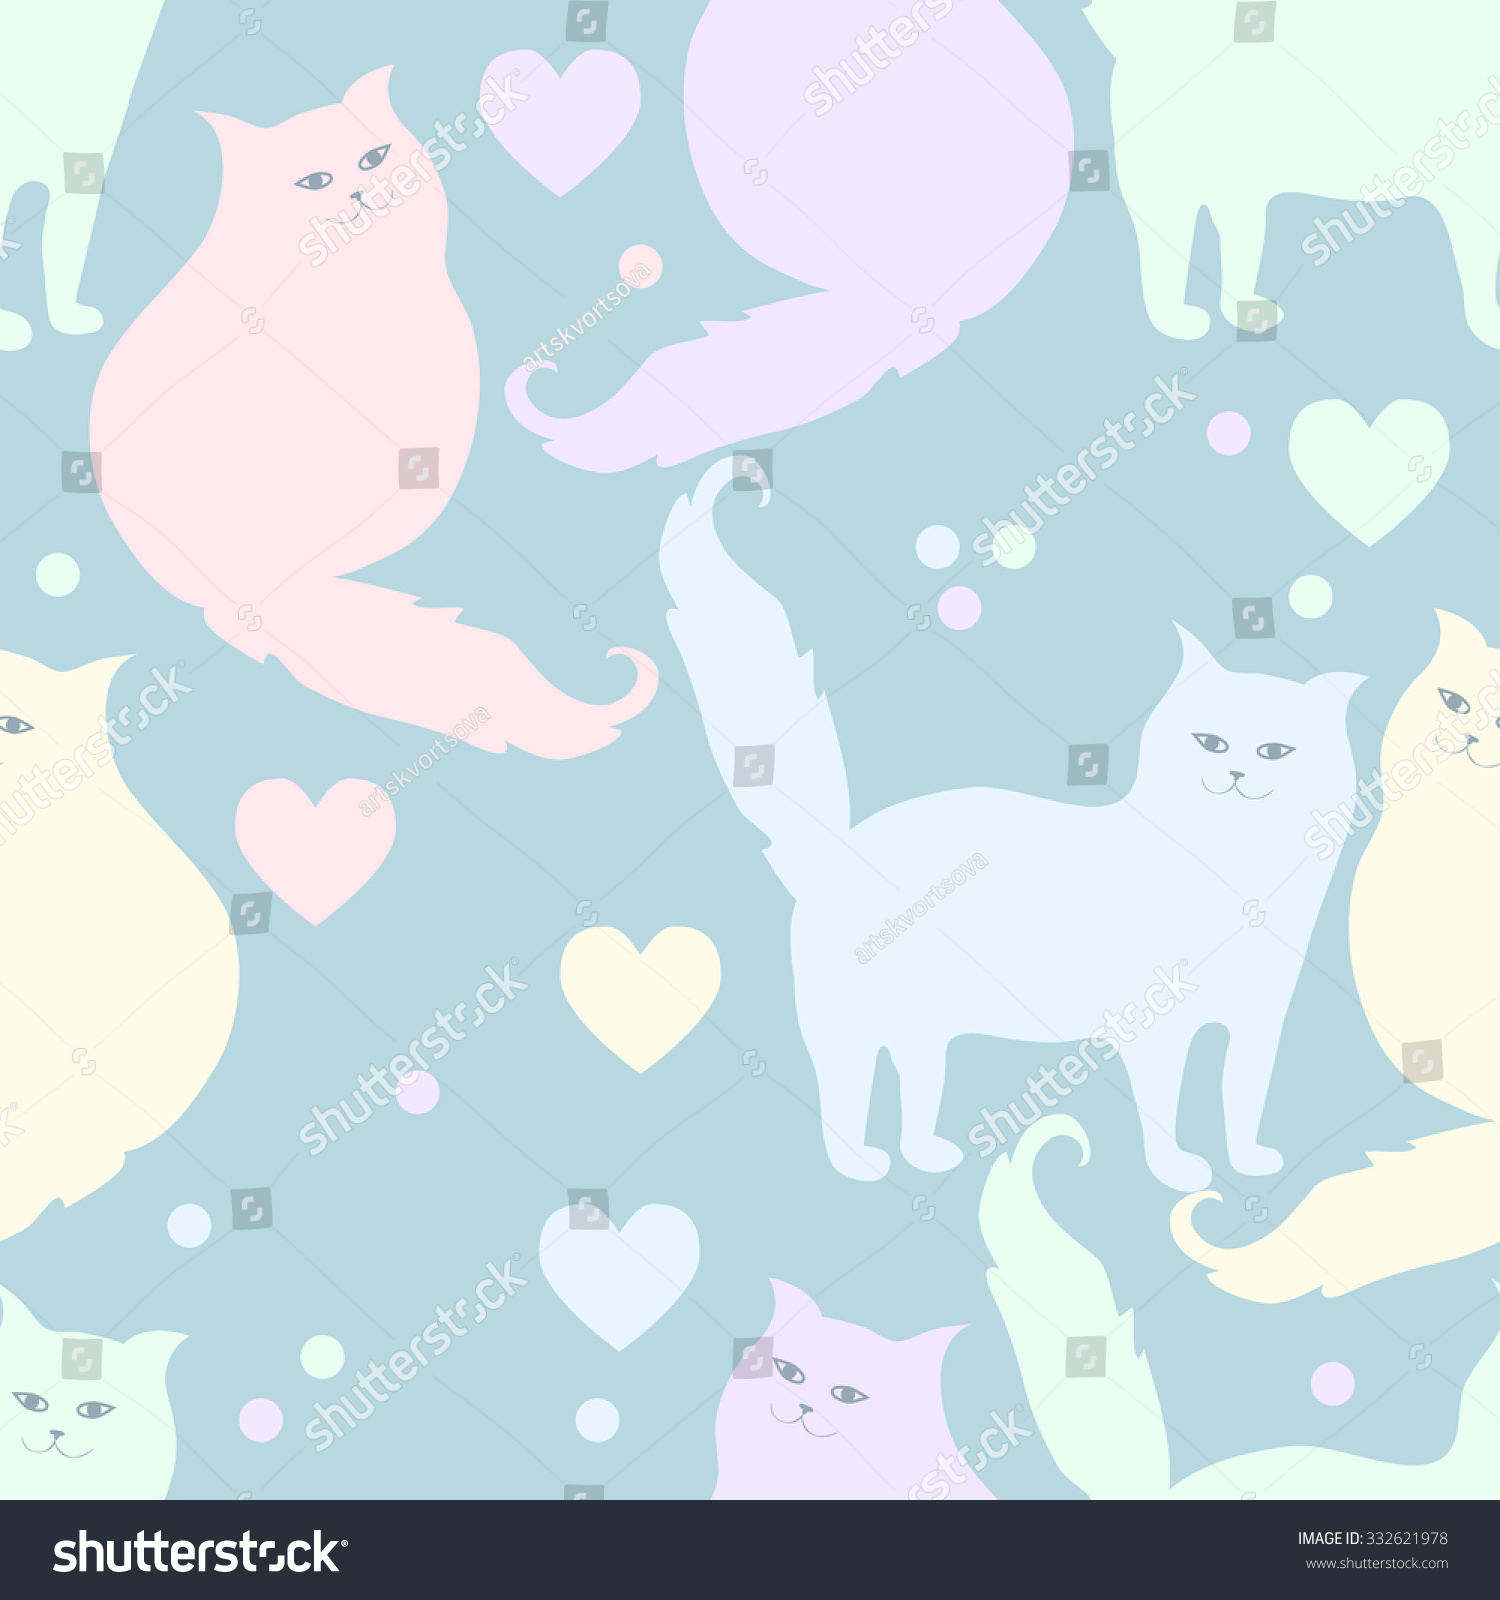 Wallpapers pattern fills web page backgrounds surface textures - Seamless Pattern With Cats Vector Background Perfect For Wallpapers Pattern Fills Web Page